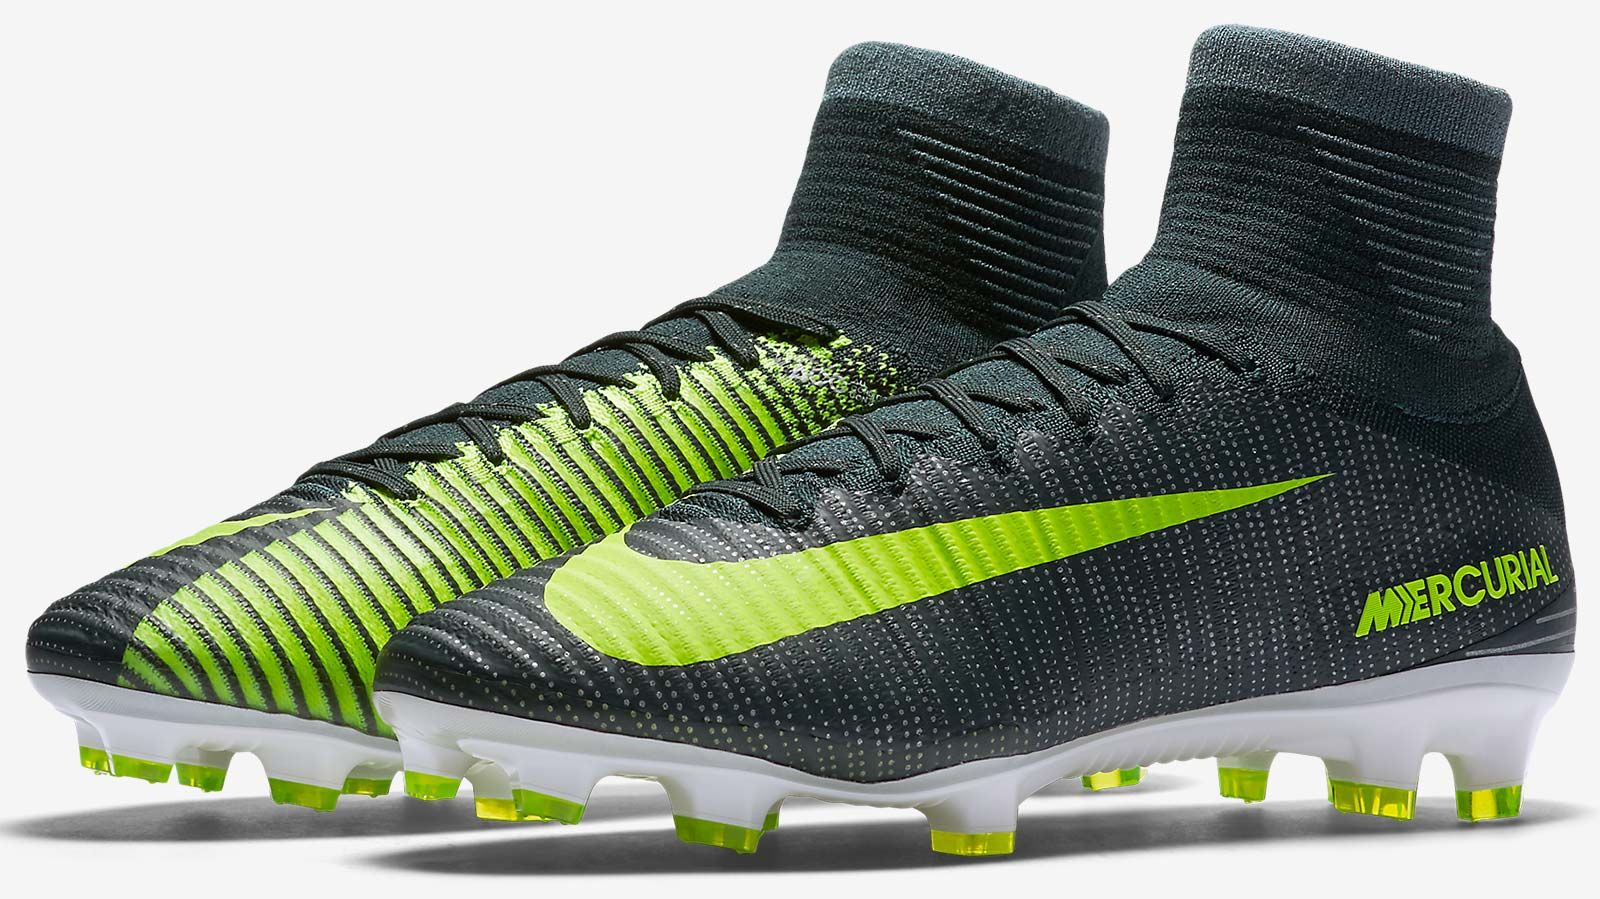 The dark green Nike Mercurial Superfly 2016-2017 Cristiano Ronaldo  Discovery Boots celebrate CR7's all